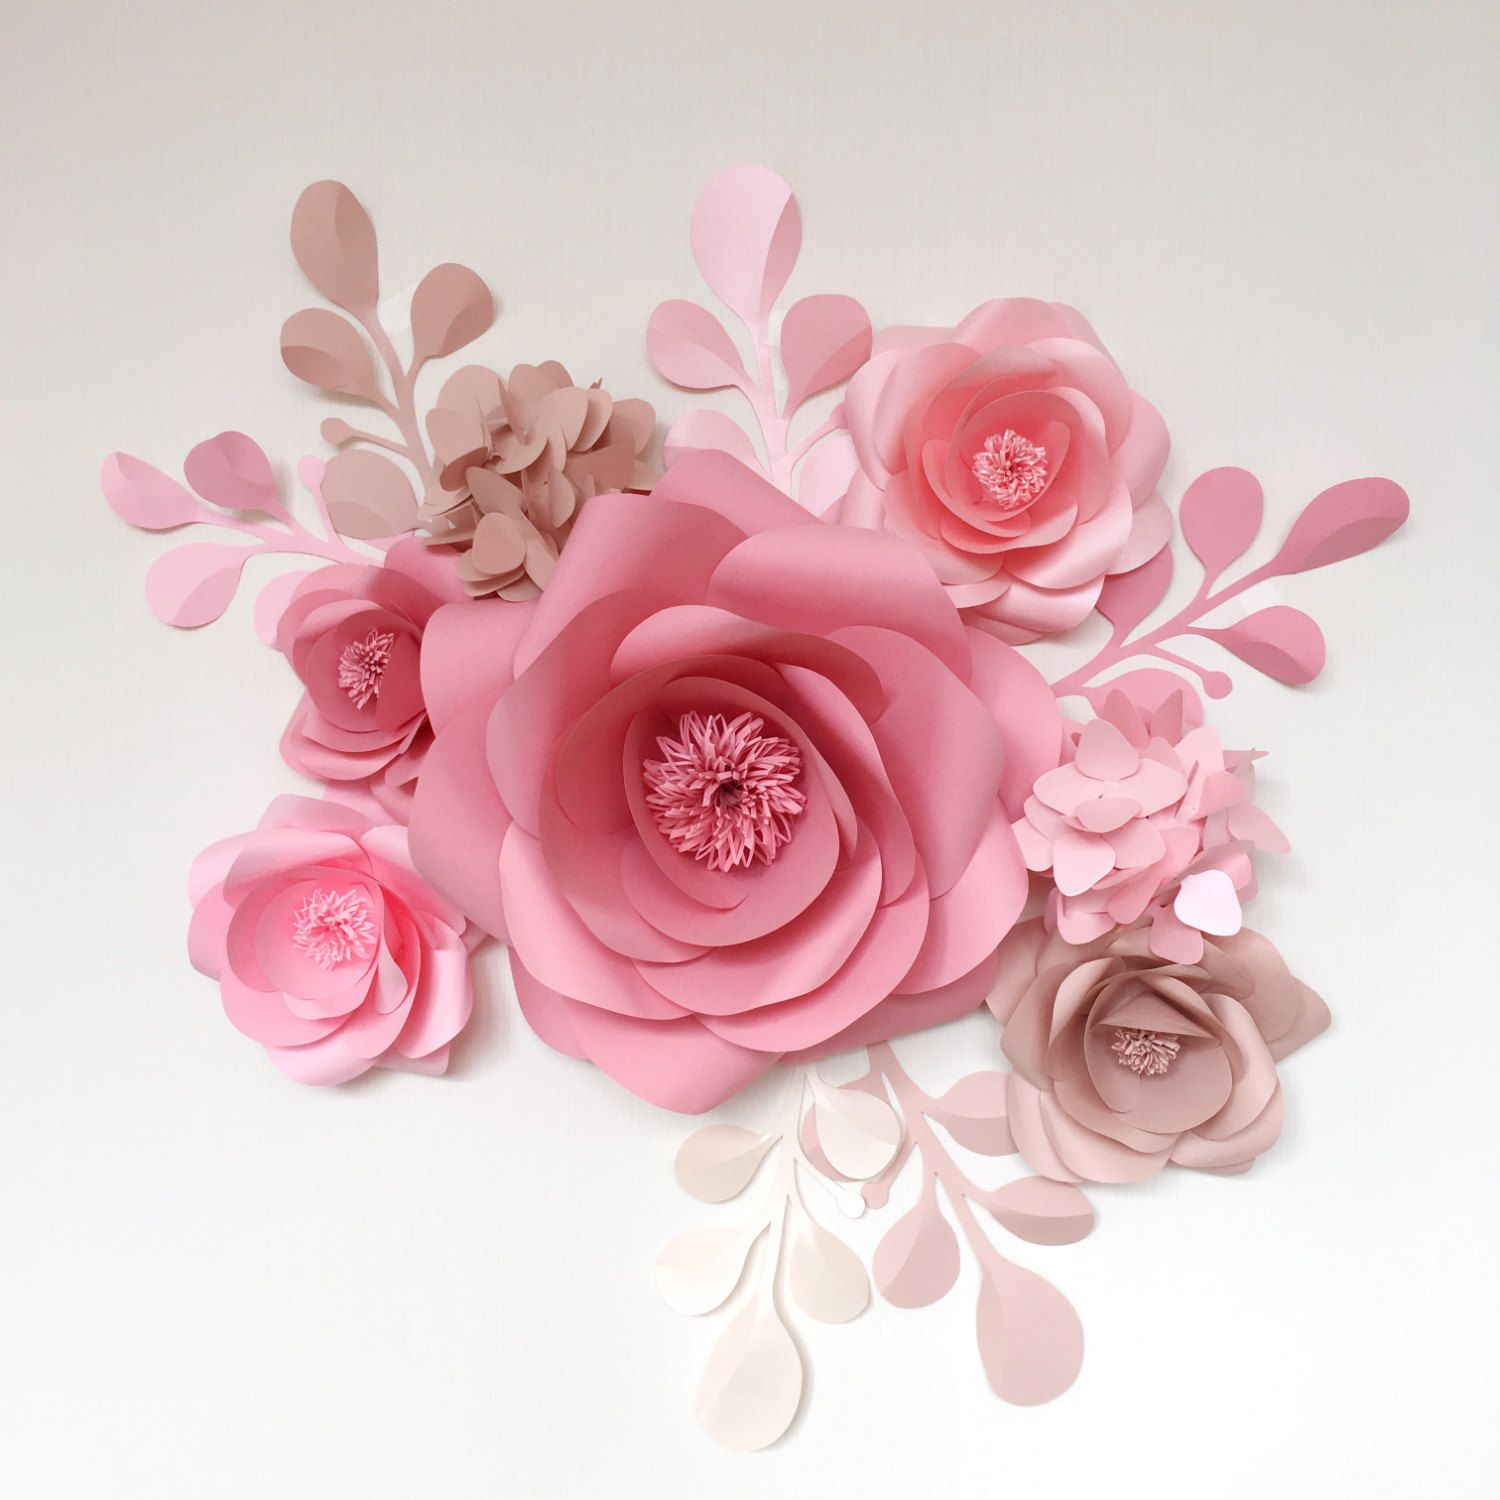 Paper flowers backdrop is key to creating an unforgettable paper flowers backdrop is key to creating an unforgettable experience not to mention incredible mightylinksfo